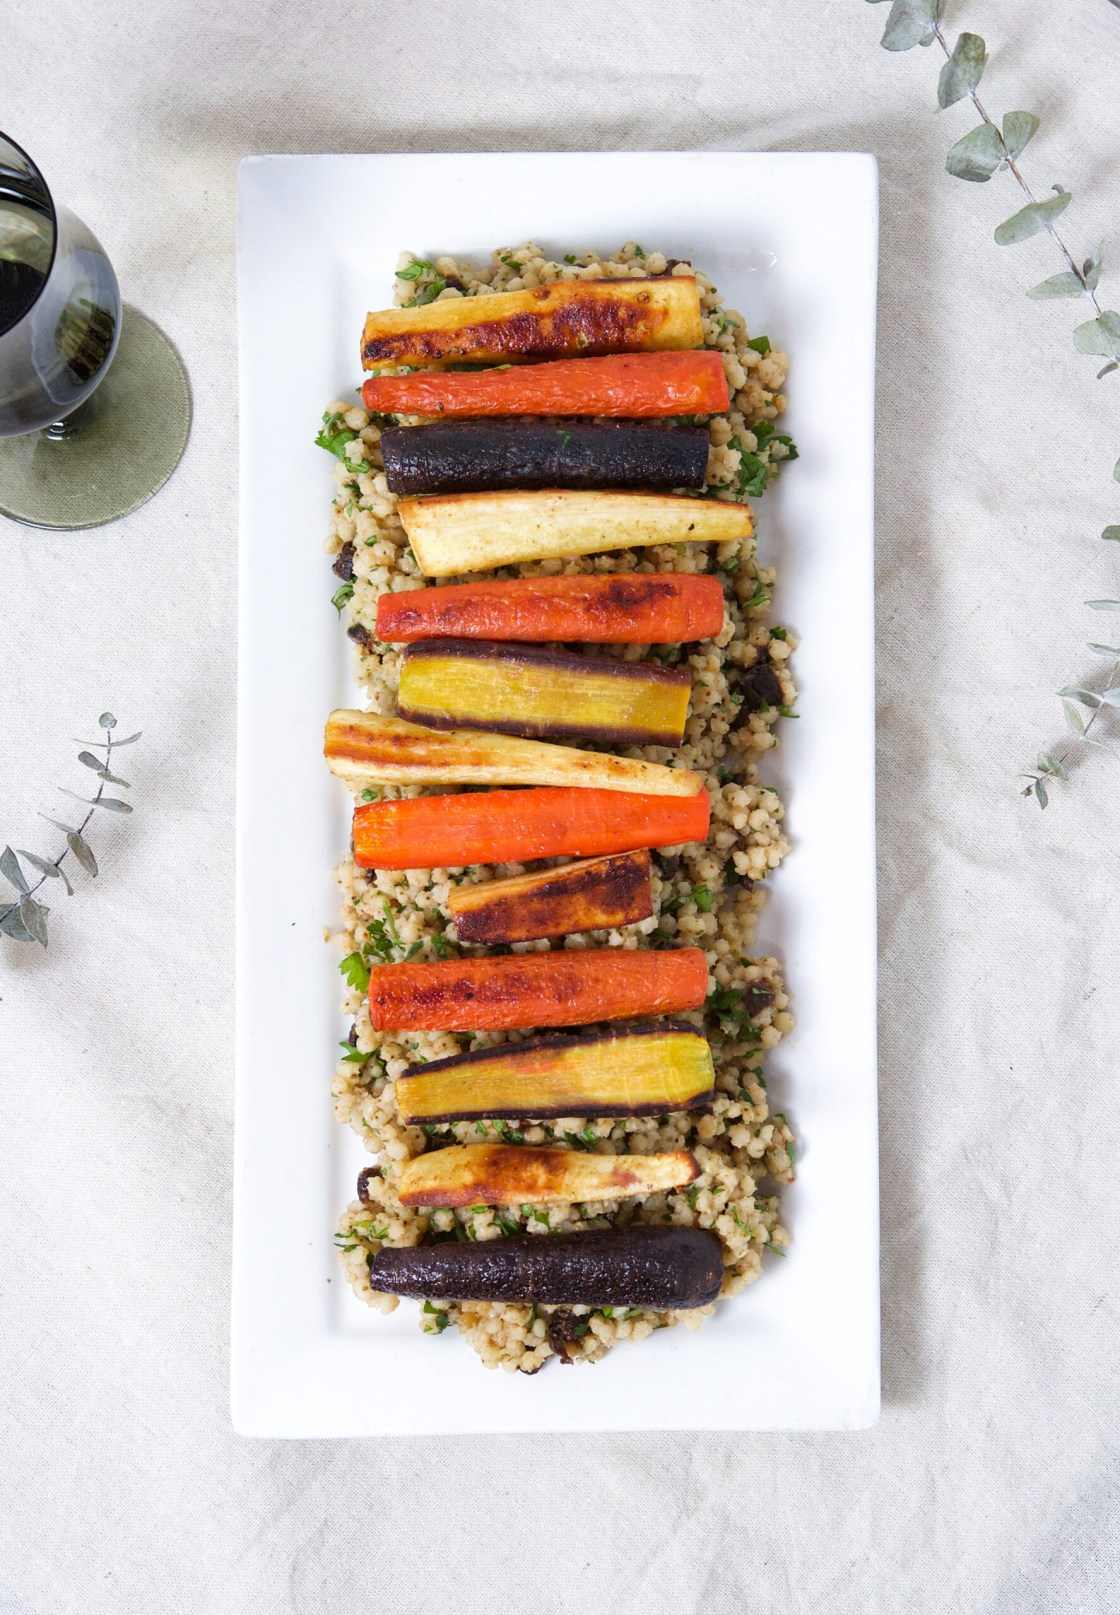 Roasted Root Vegetables & Sorghum Pilaf layered on a rectangular white plate | Zestful Kitchen